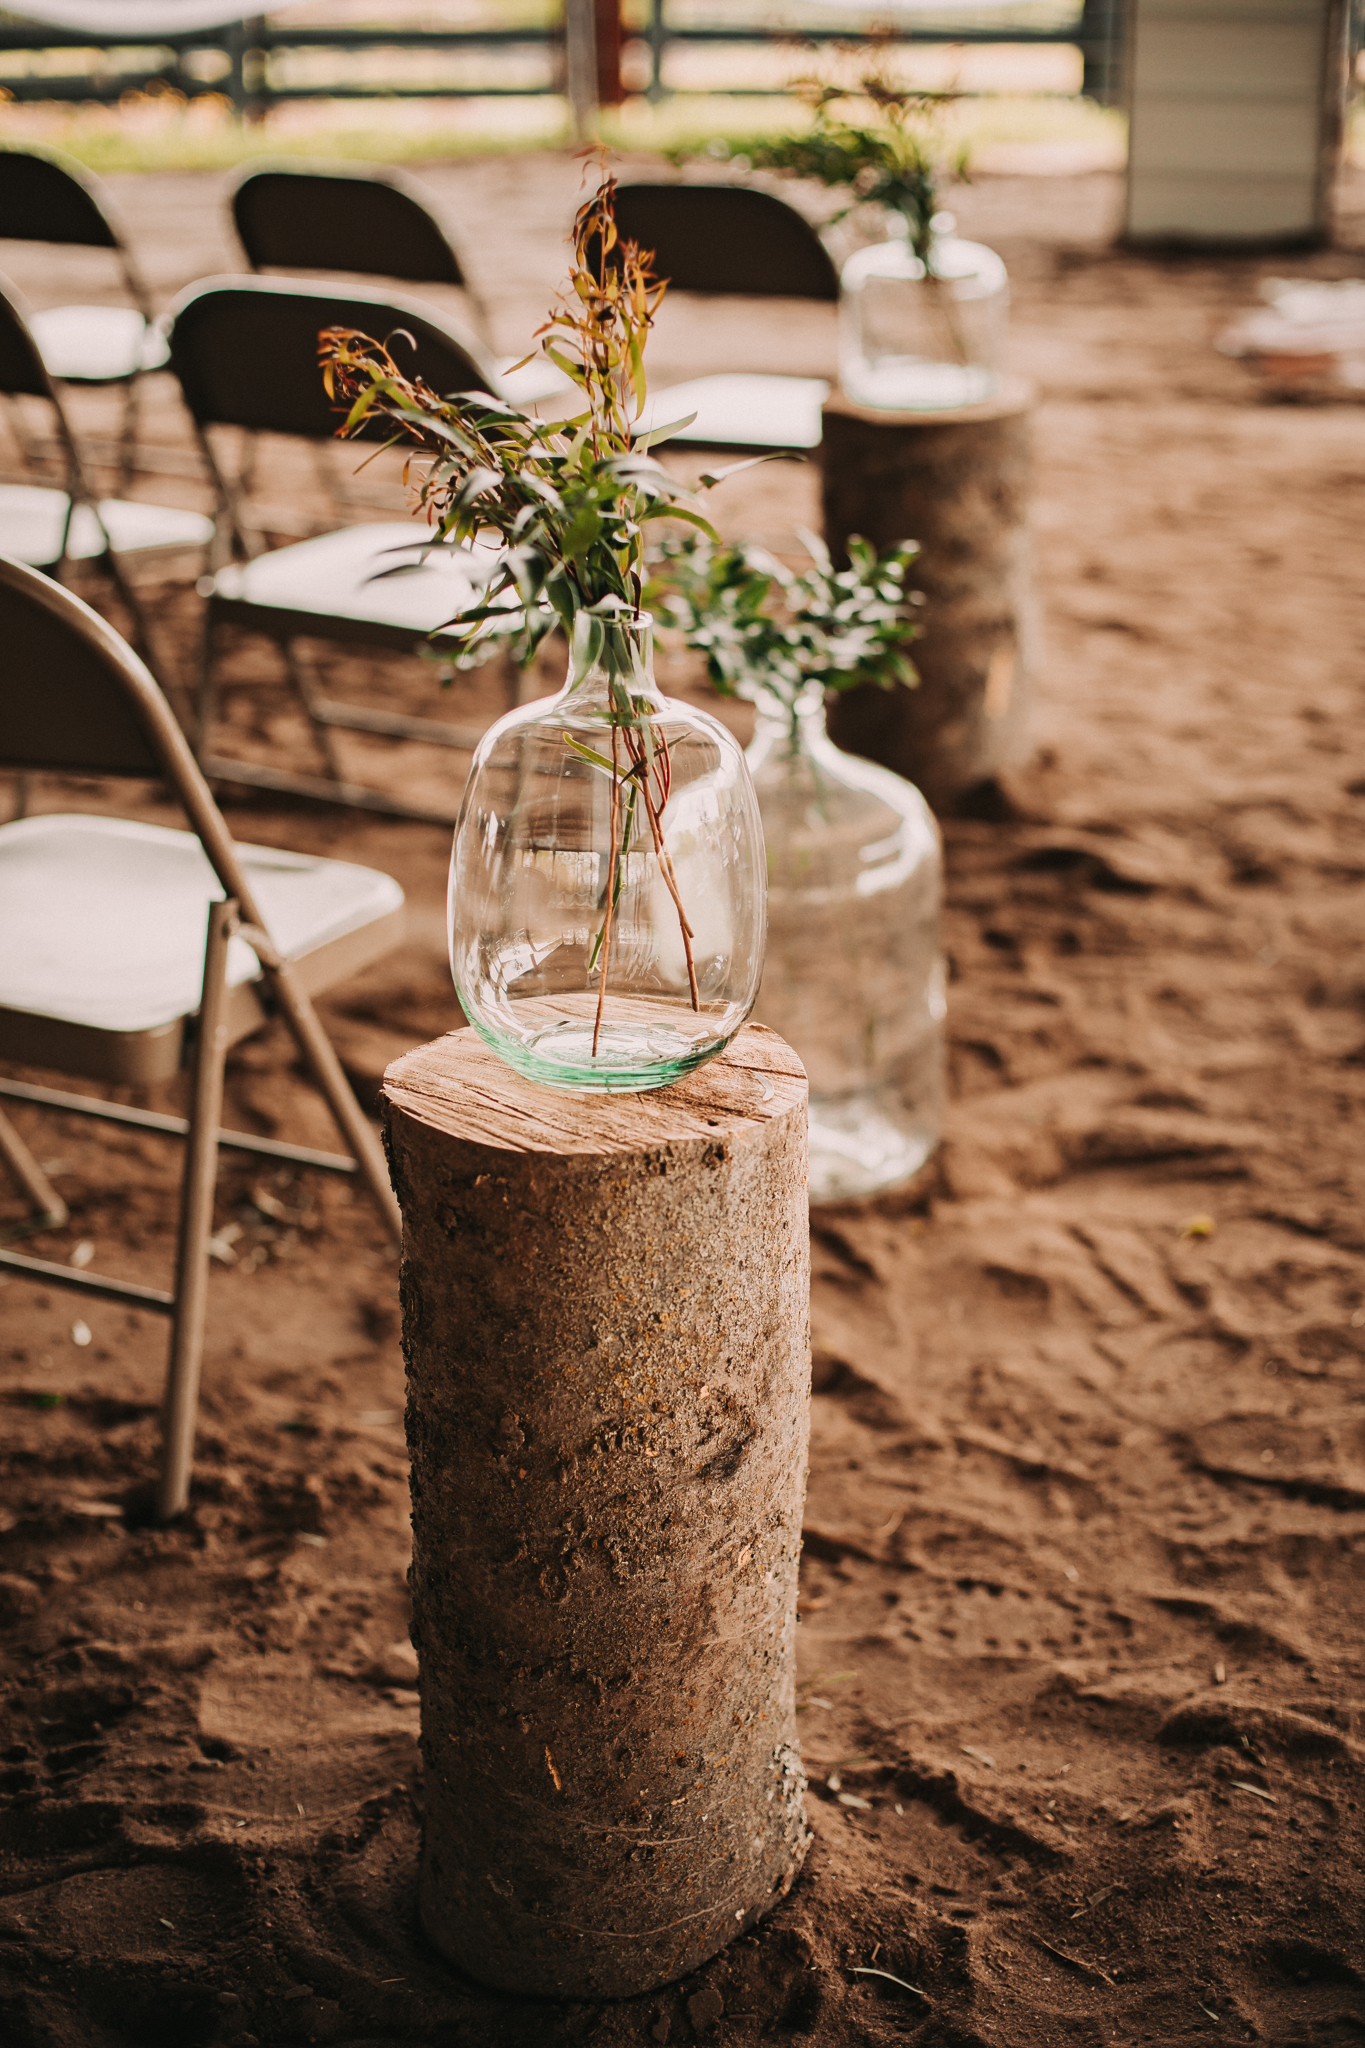 Wedding Ceremony Decor: Minimalistic Barn Wedding featured on Nashville Bride Guide